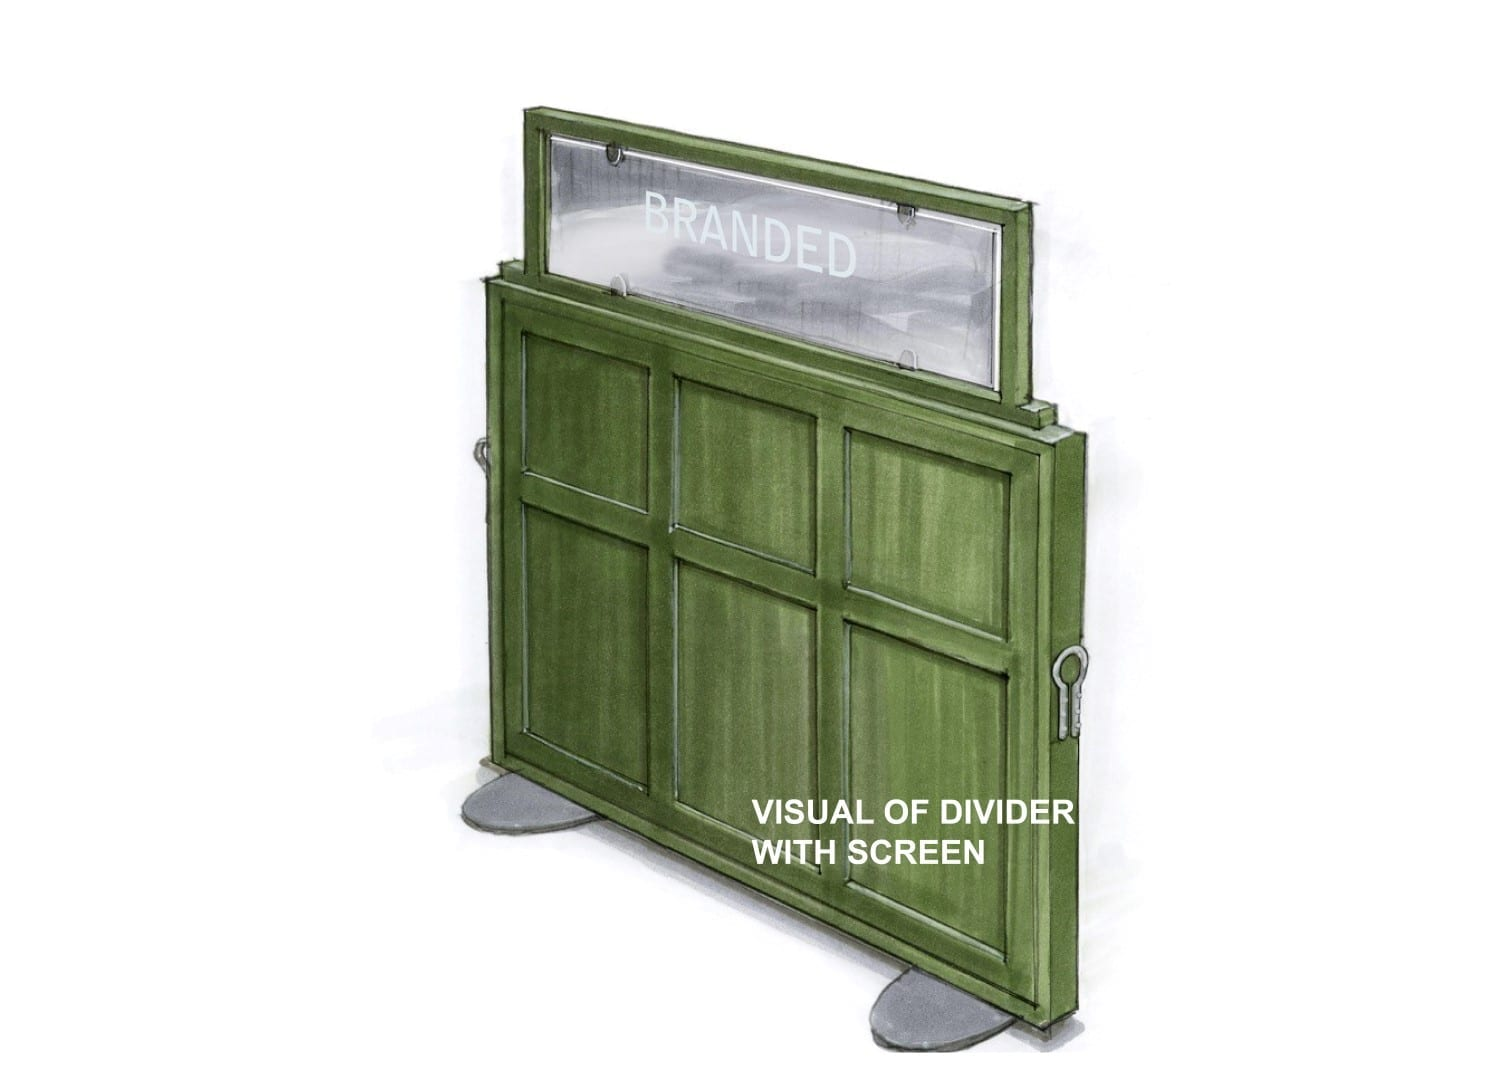 visual of divider with screen